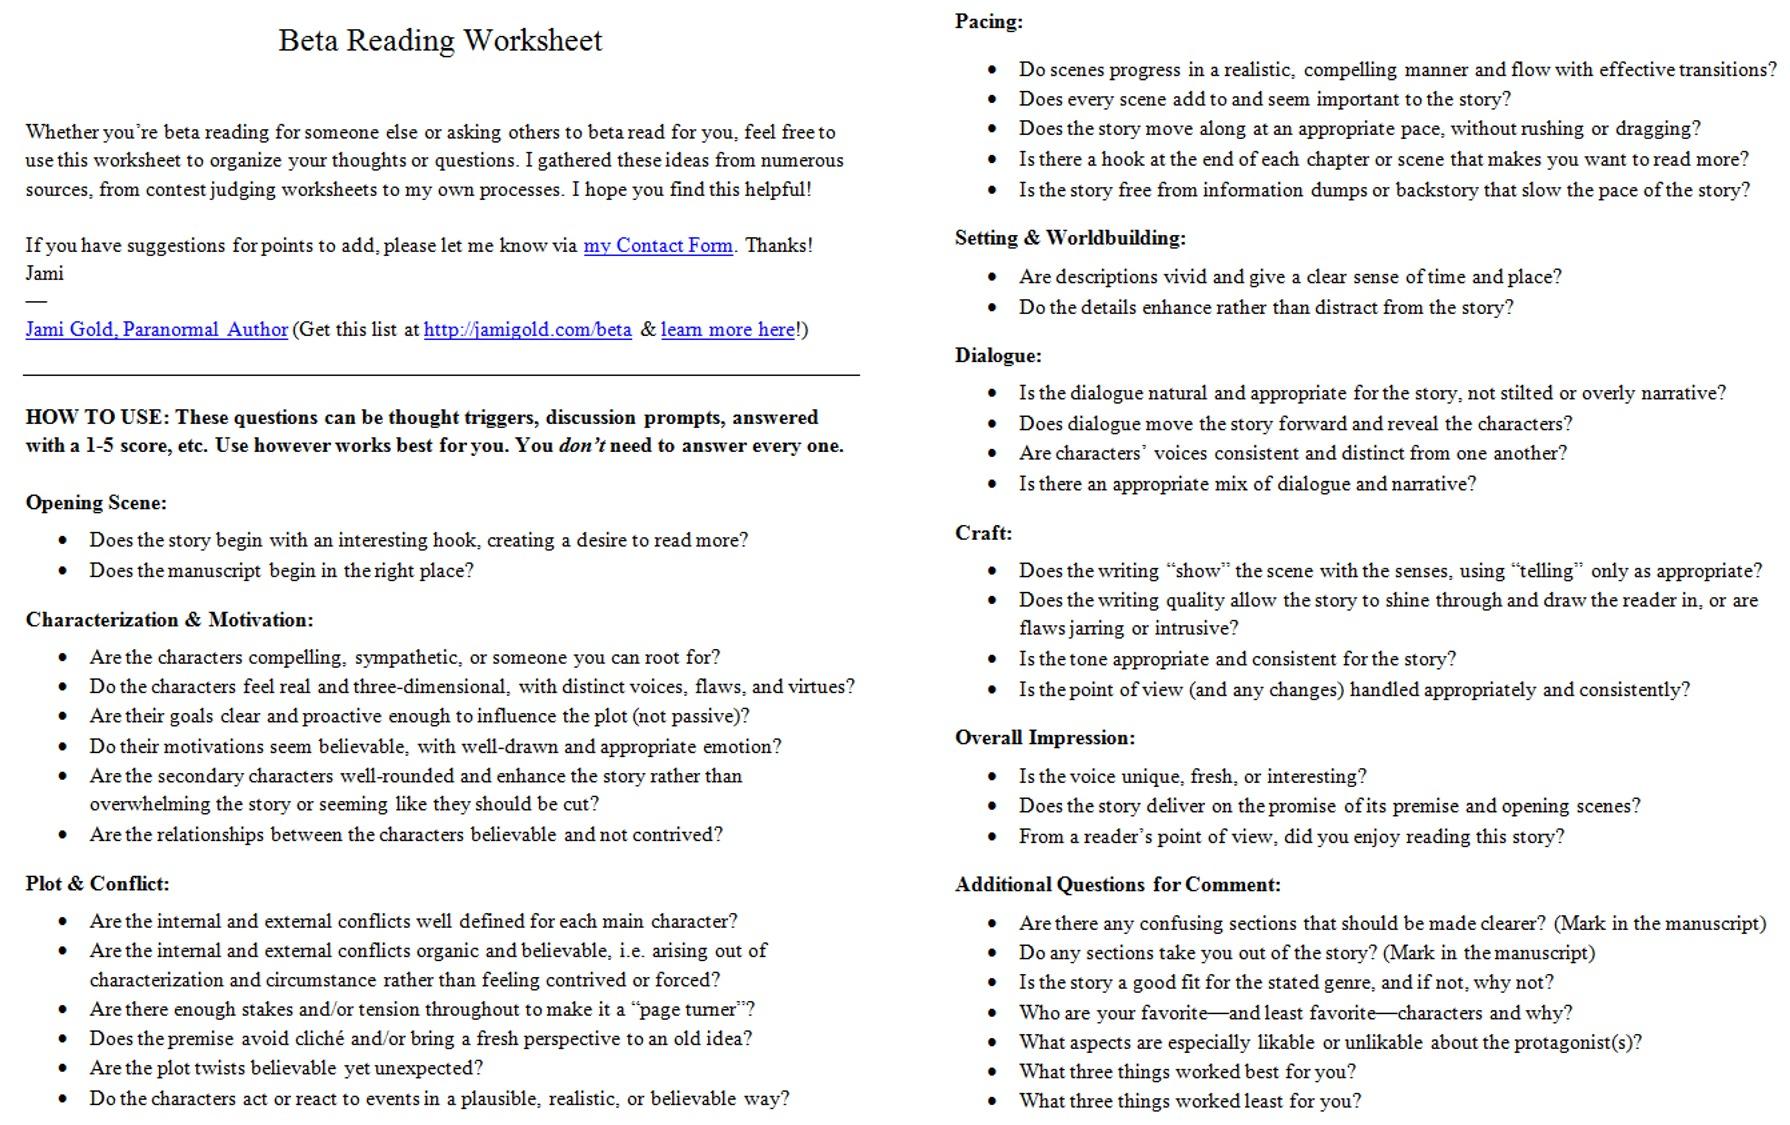 Weirdmailus  Mesmerizing Worksheets For Writers  Jami Gold Paranormal Author With Magnificent Screen Shot Of The Twopage Beta Reading Worksheet With Agreeable Worksheet On Simplifying Fractions Also Finding Factors Of A Number Worksheet In Addition Algebra Addition Worksheets And Ga Child Support Calculator Worksheet As Well As Pictogram Worksheets Additionally Worksheet On Conduction Convection And Radiation From Jamigoldcom With Weirdmailus  Magnificent Worksheets For Writers  Jami Gold Paranormal Author With Agreeable Screen Shot Of The Twopage Beta Reading Worksheet And Mesmerizing Worksheet On Simplifying Fractions Also Finding Factors Of A Number Worksheet In Addition Algebra Addition Worksheets From Jamigoldcom